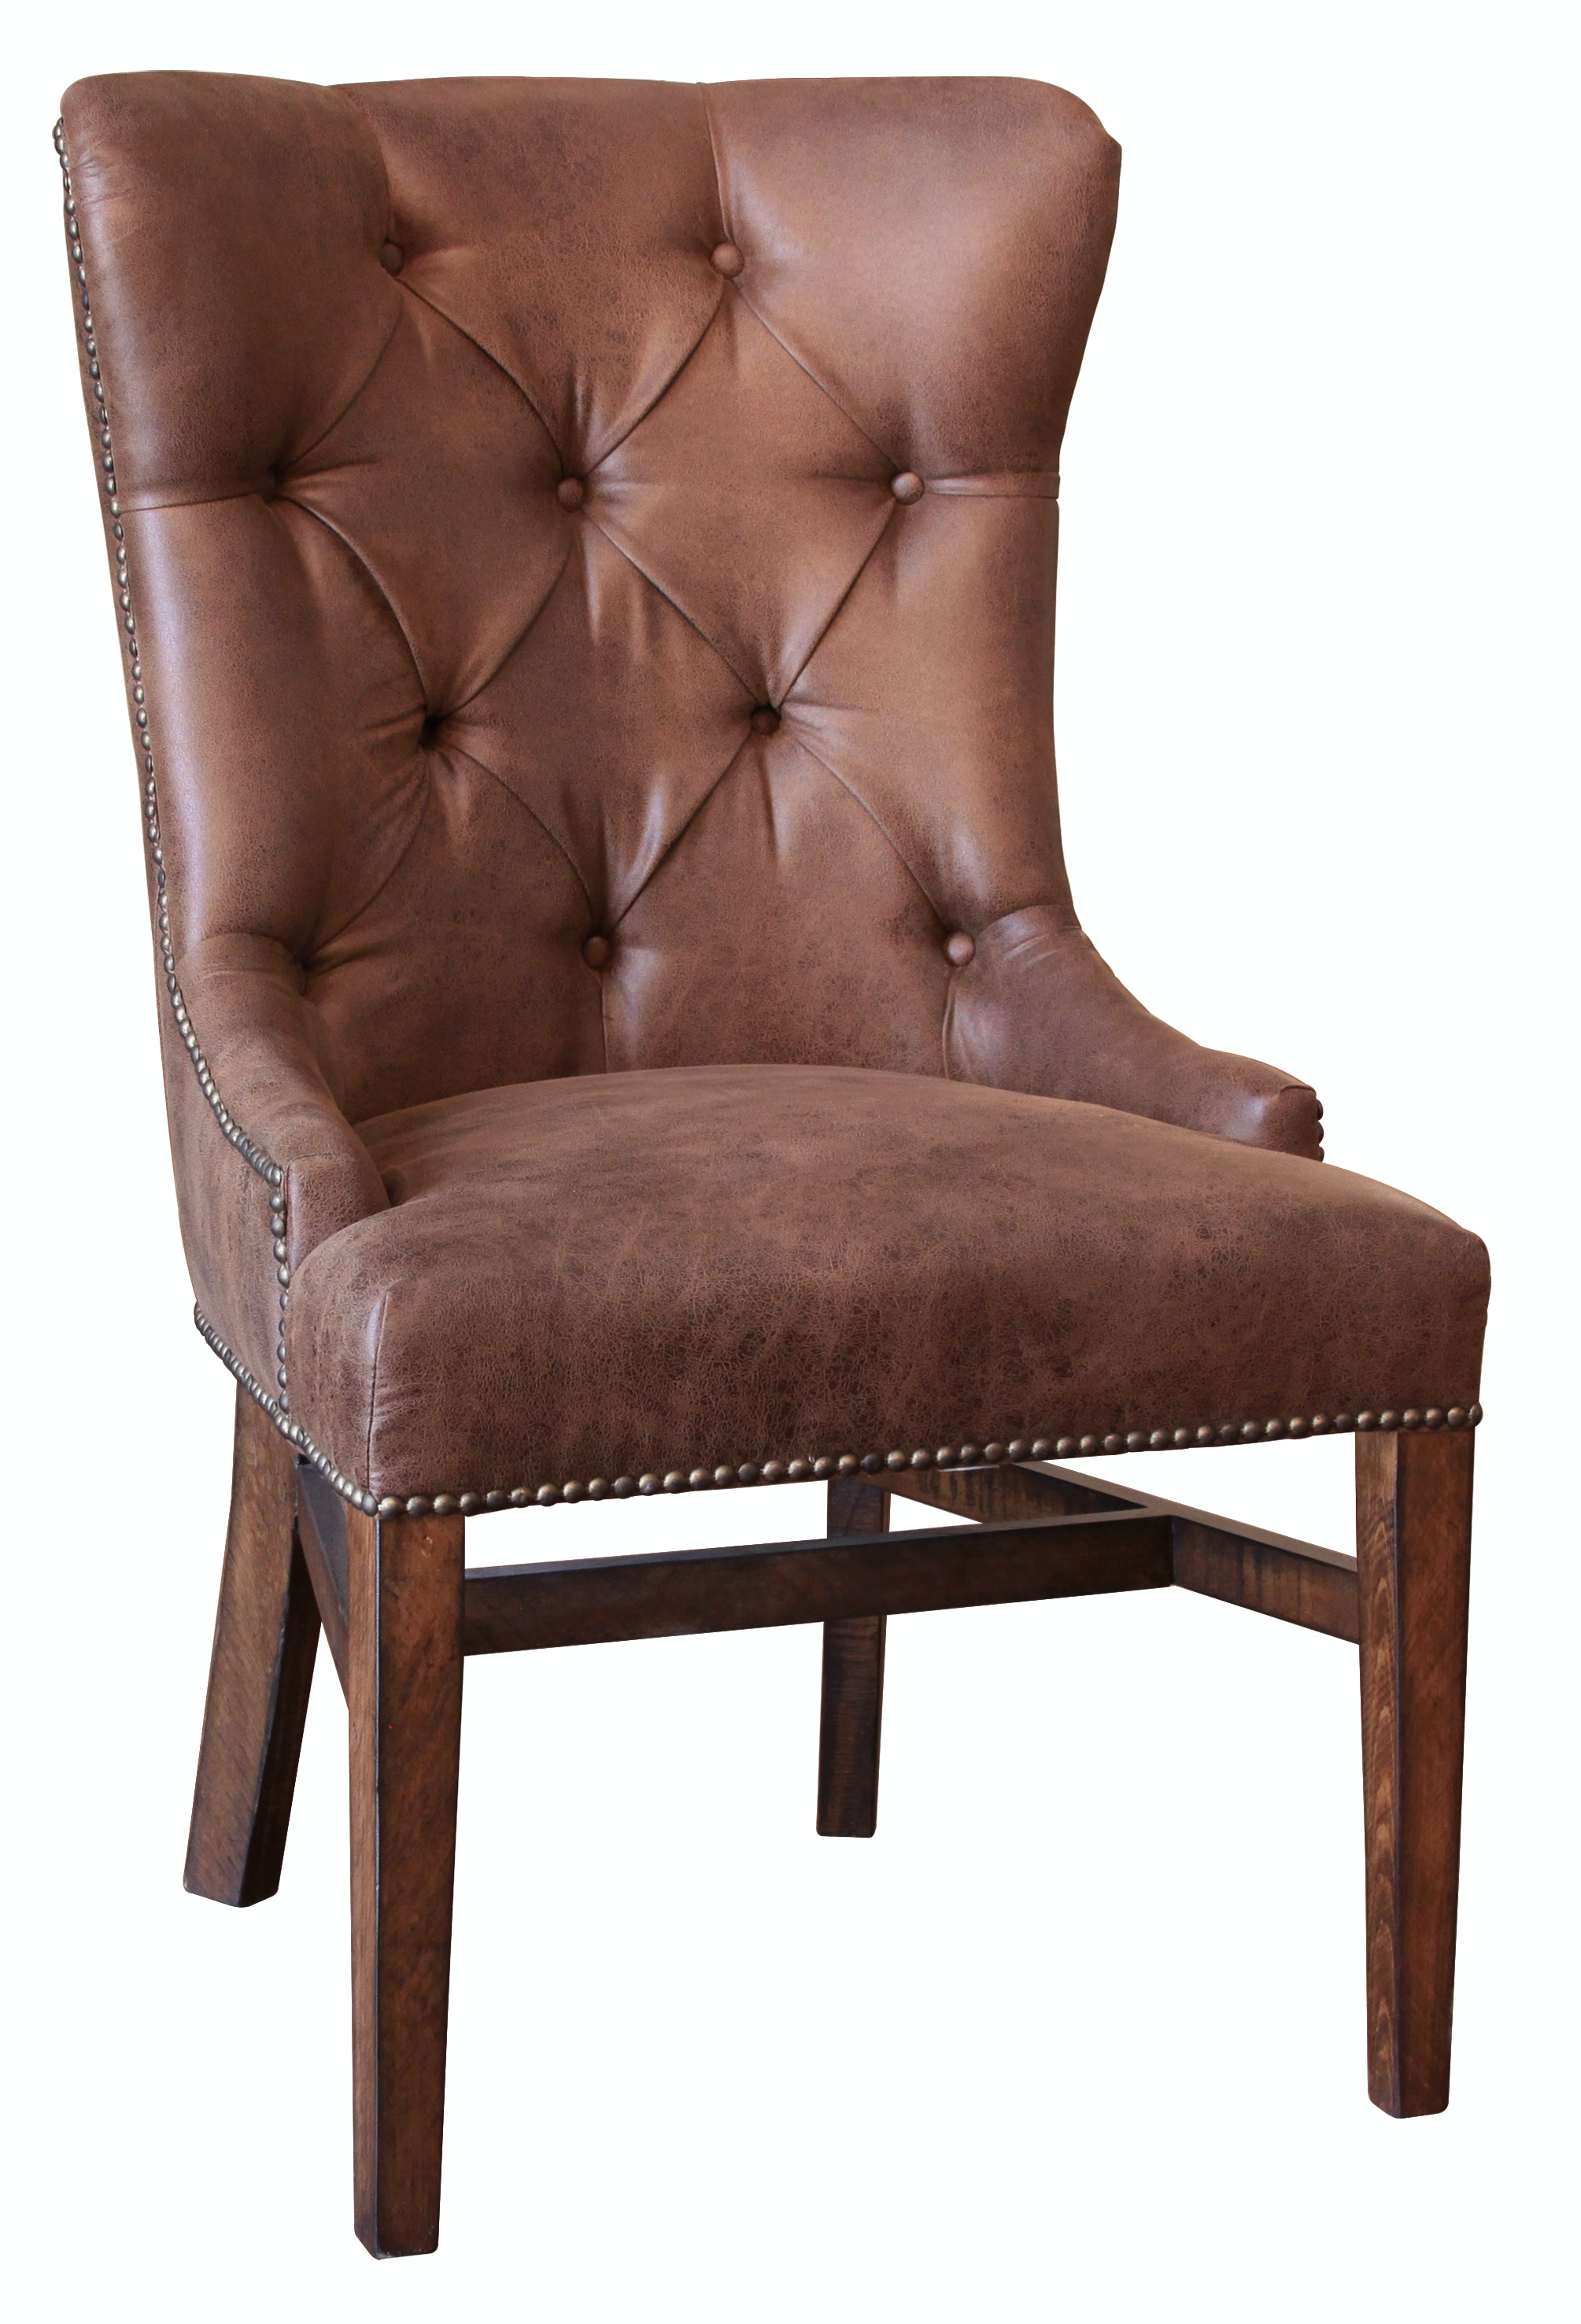 International Furniture Direct Brown Fabric Chair With Tufted Back (2 Per  Box) IFD1020CHAIR